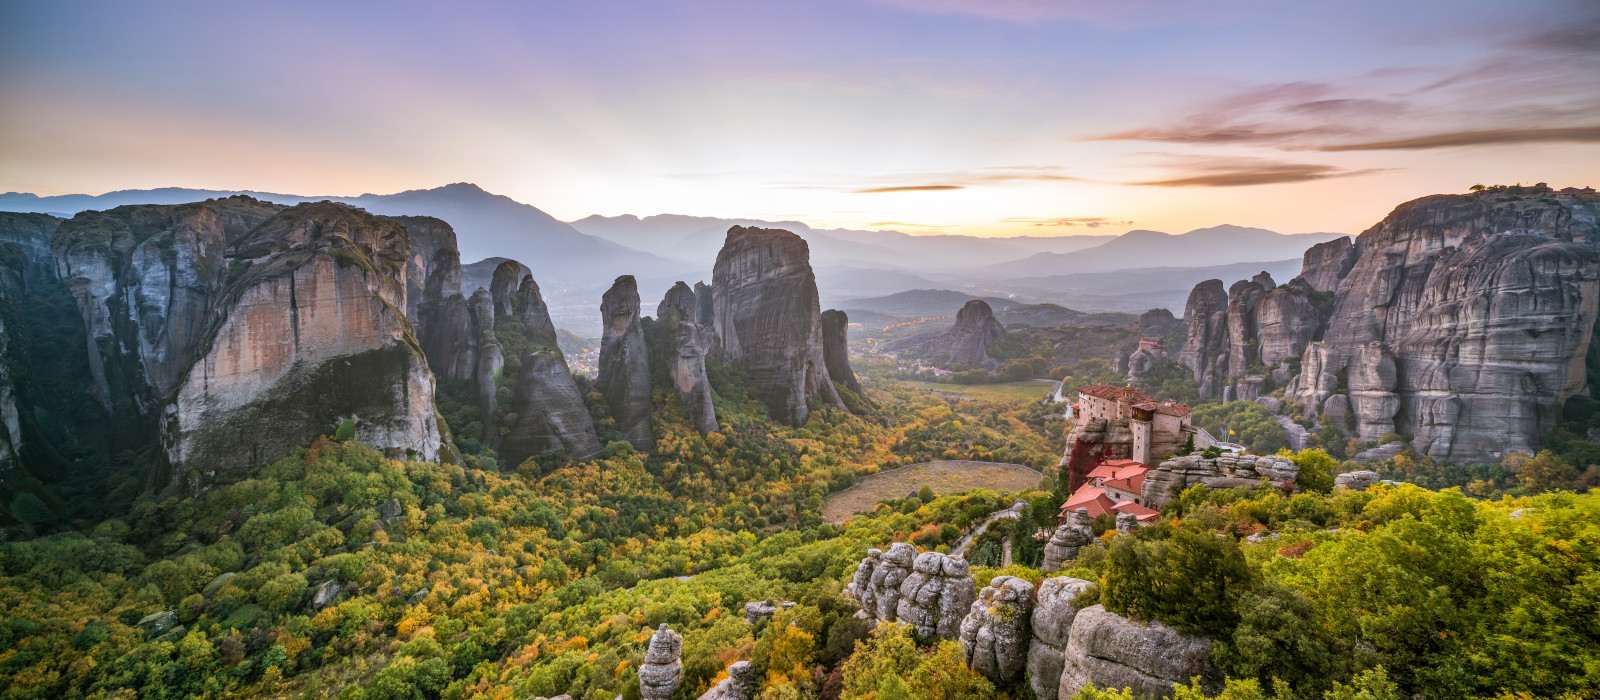 Destination Meteora Greece